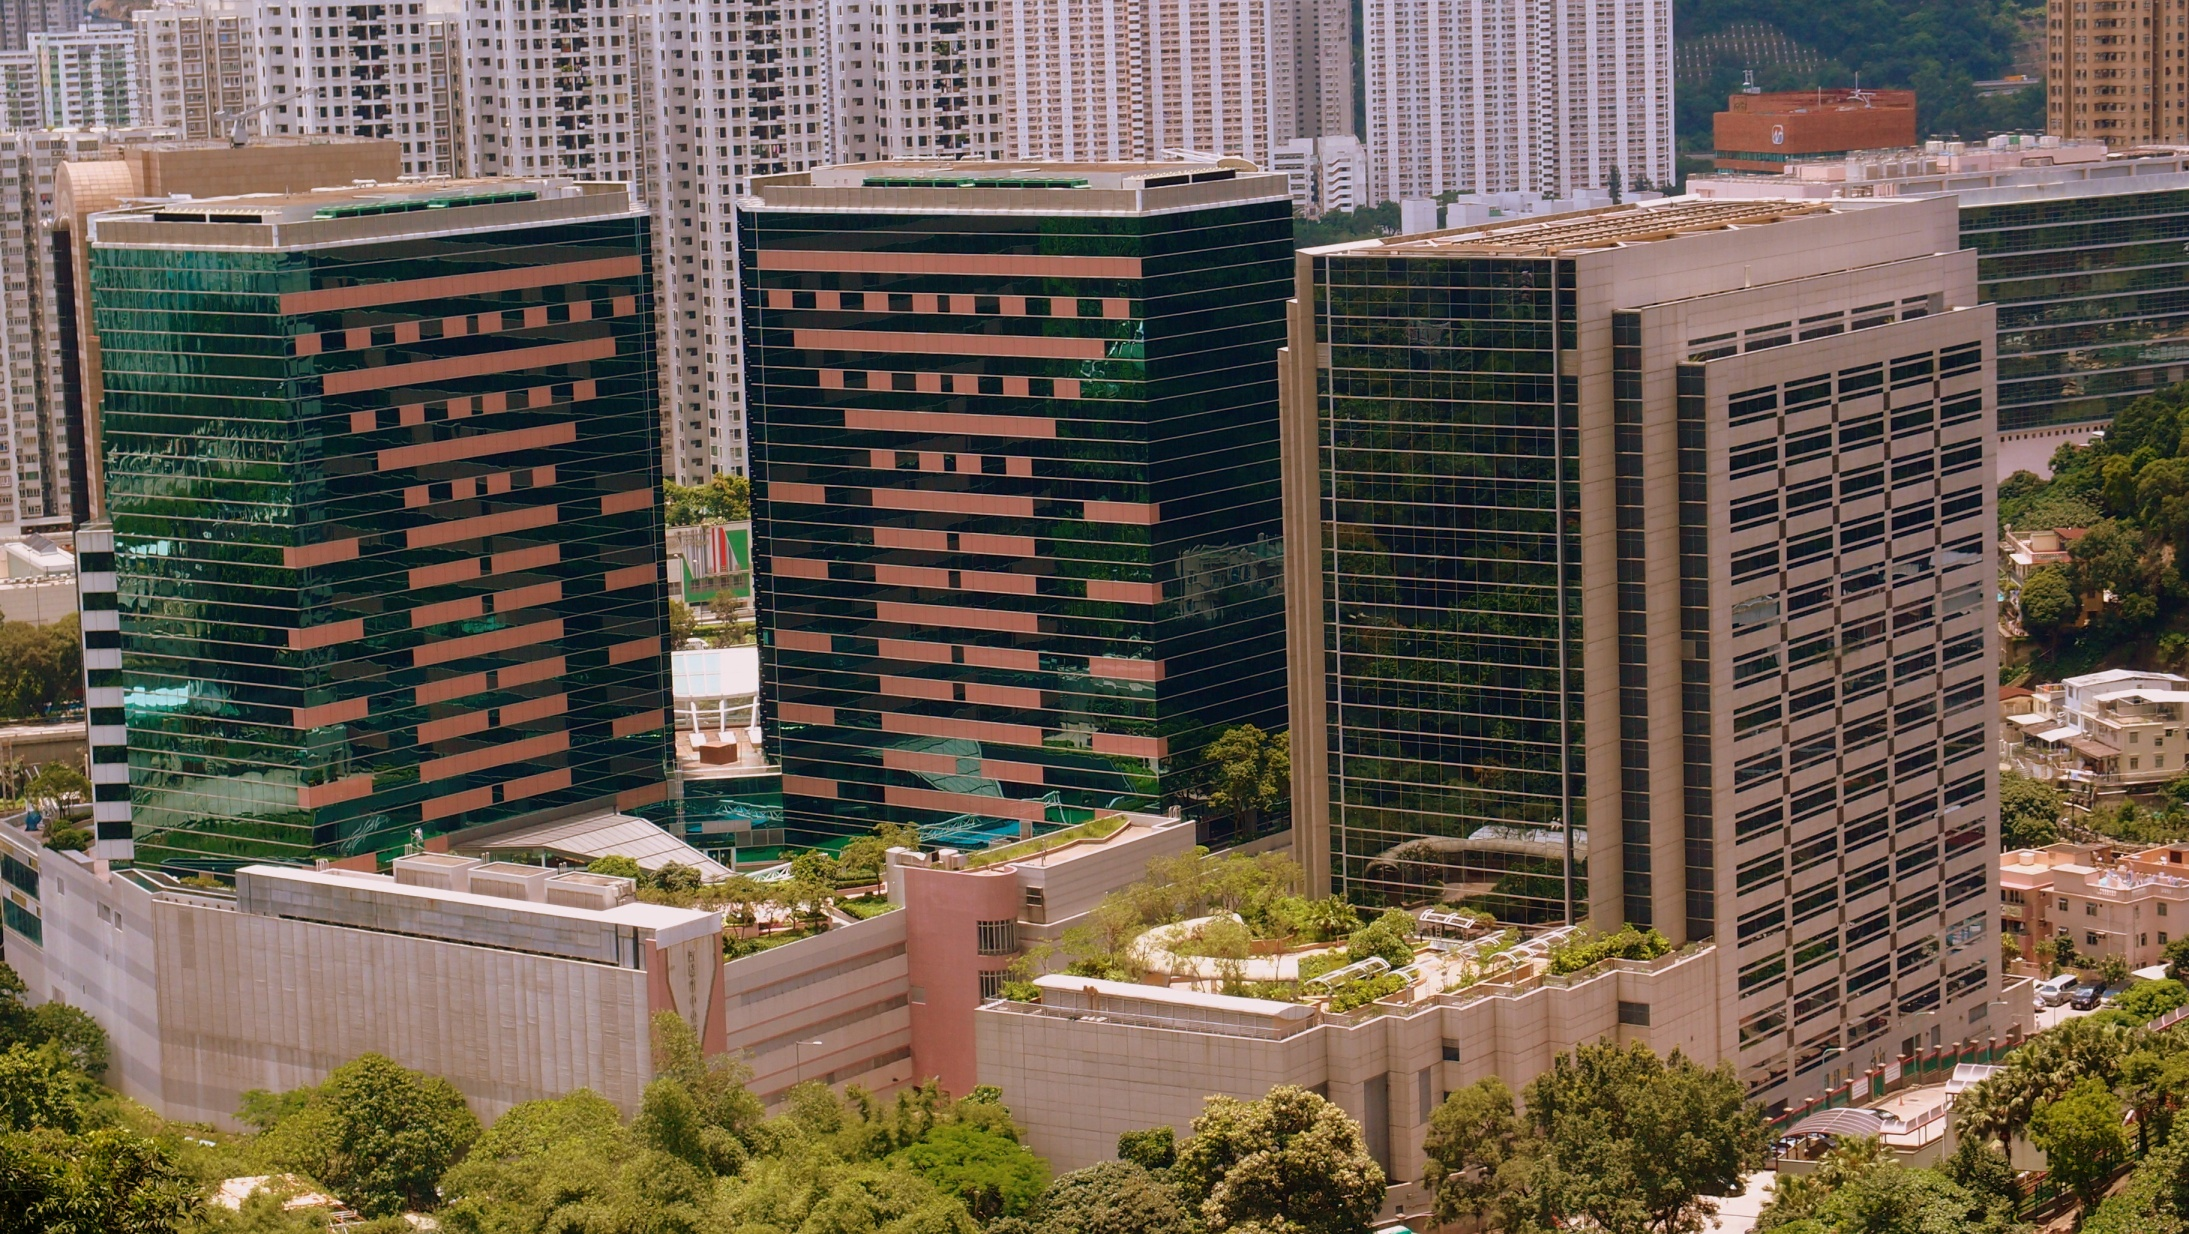 Yet another great view of Shatin